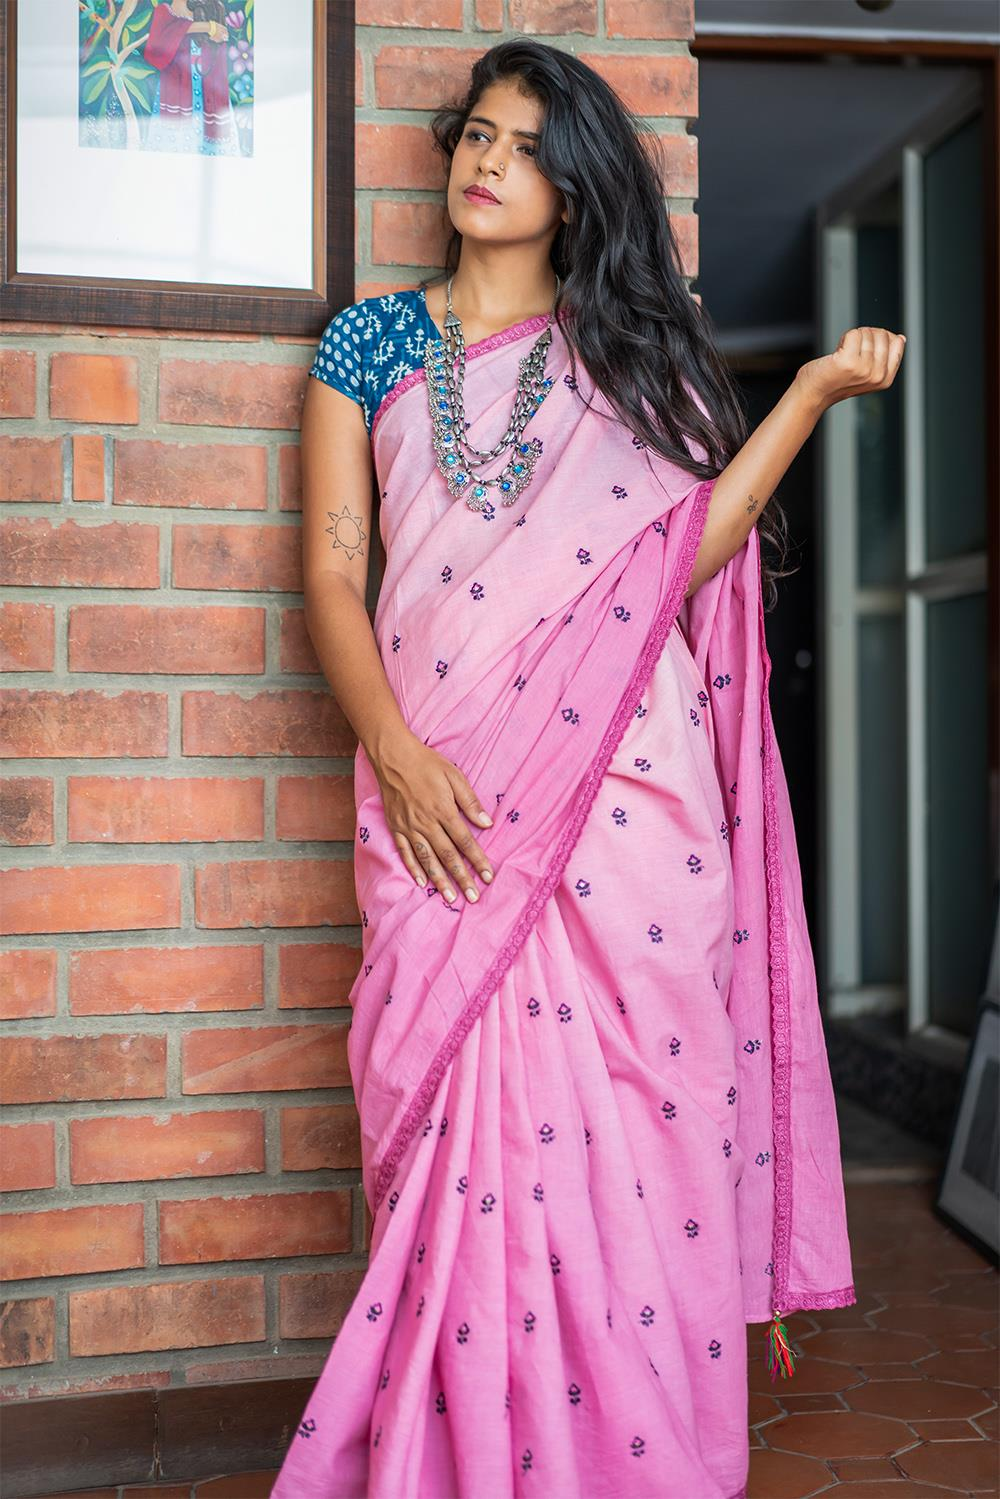 summer-saree-designs-2019 (5)summer-saree-designs-2019 (5)